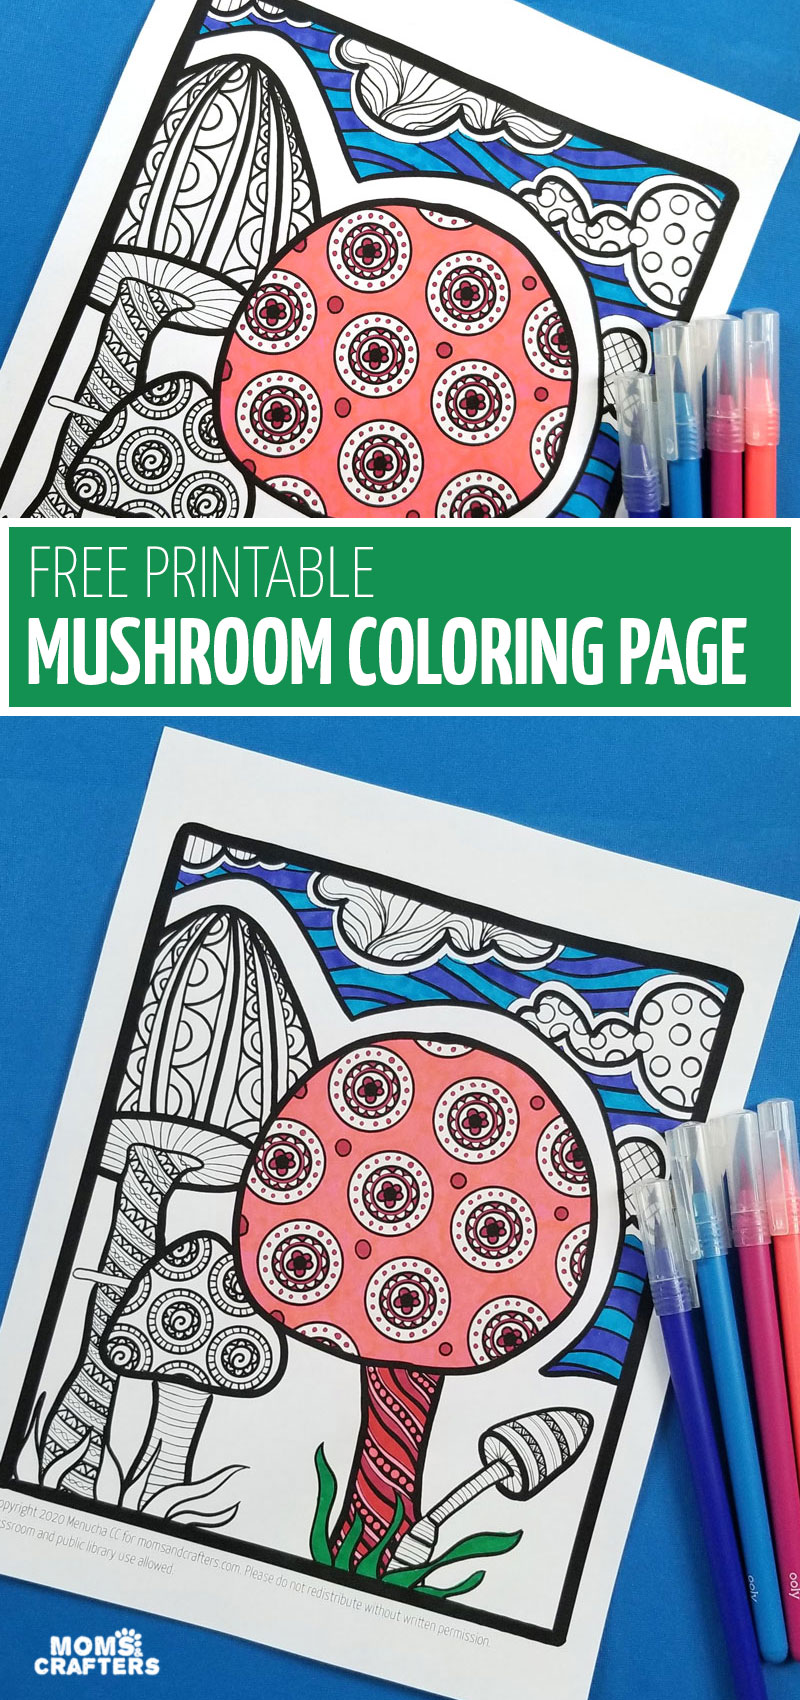 Pin image for free printable mushroom coloring page.